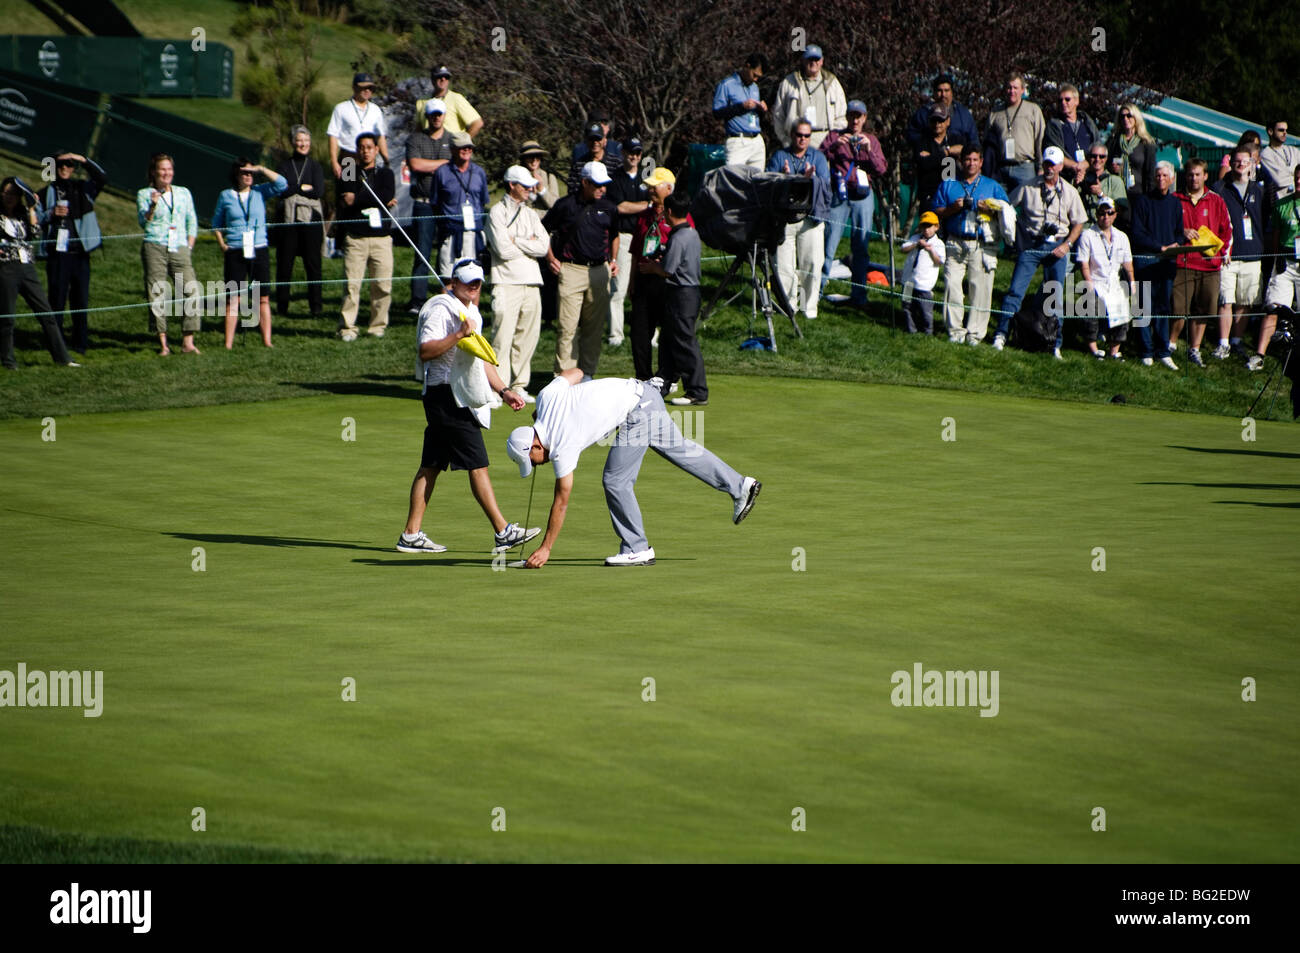 Anthony Kim marks his putt on the 18th green of Sherwood CC during the Pro Am round of the Chevron World Golf Challenge. - Stock Image